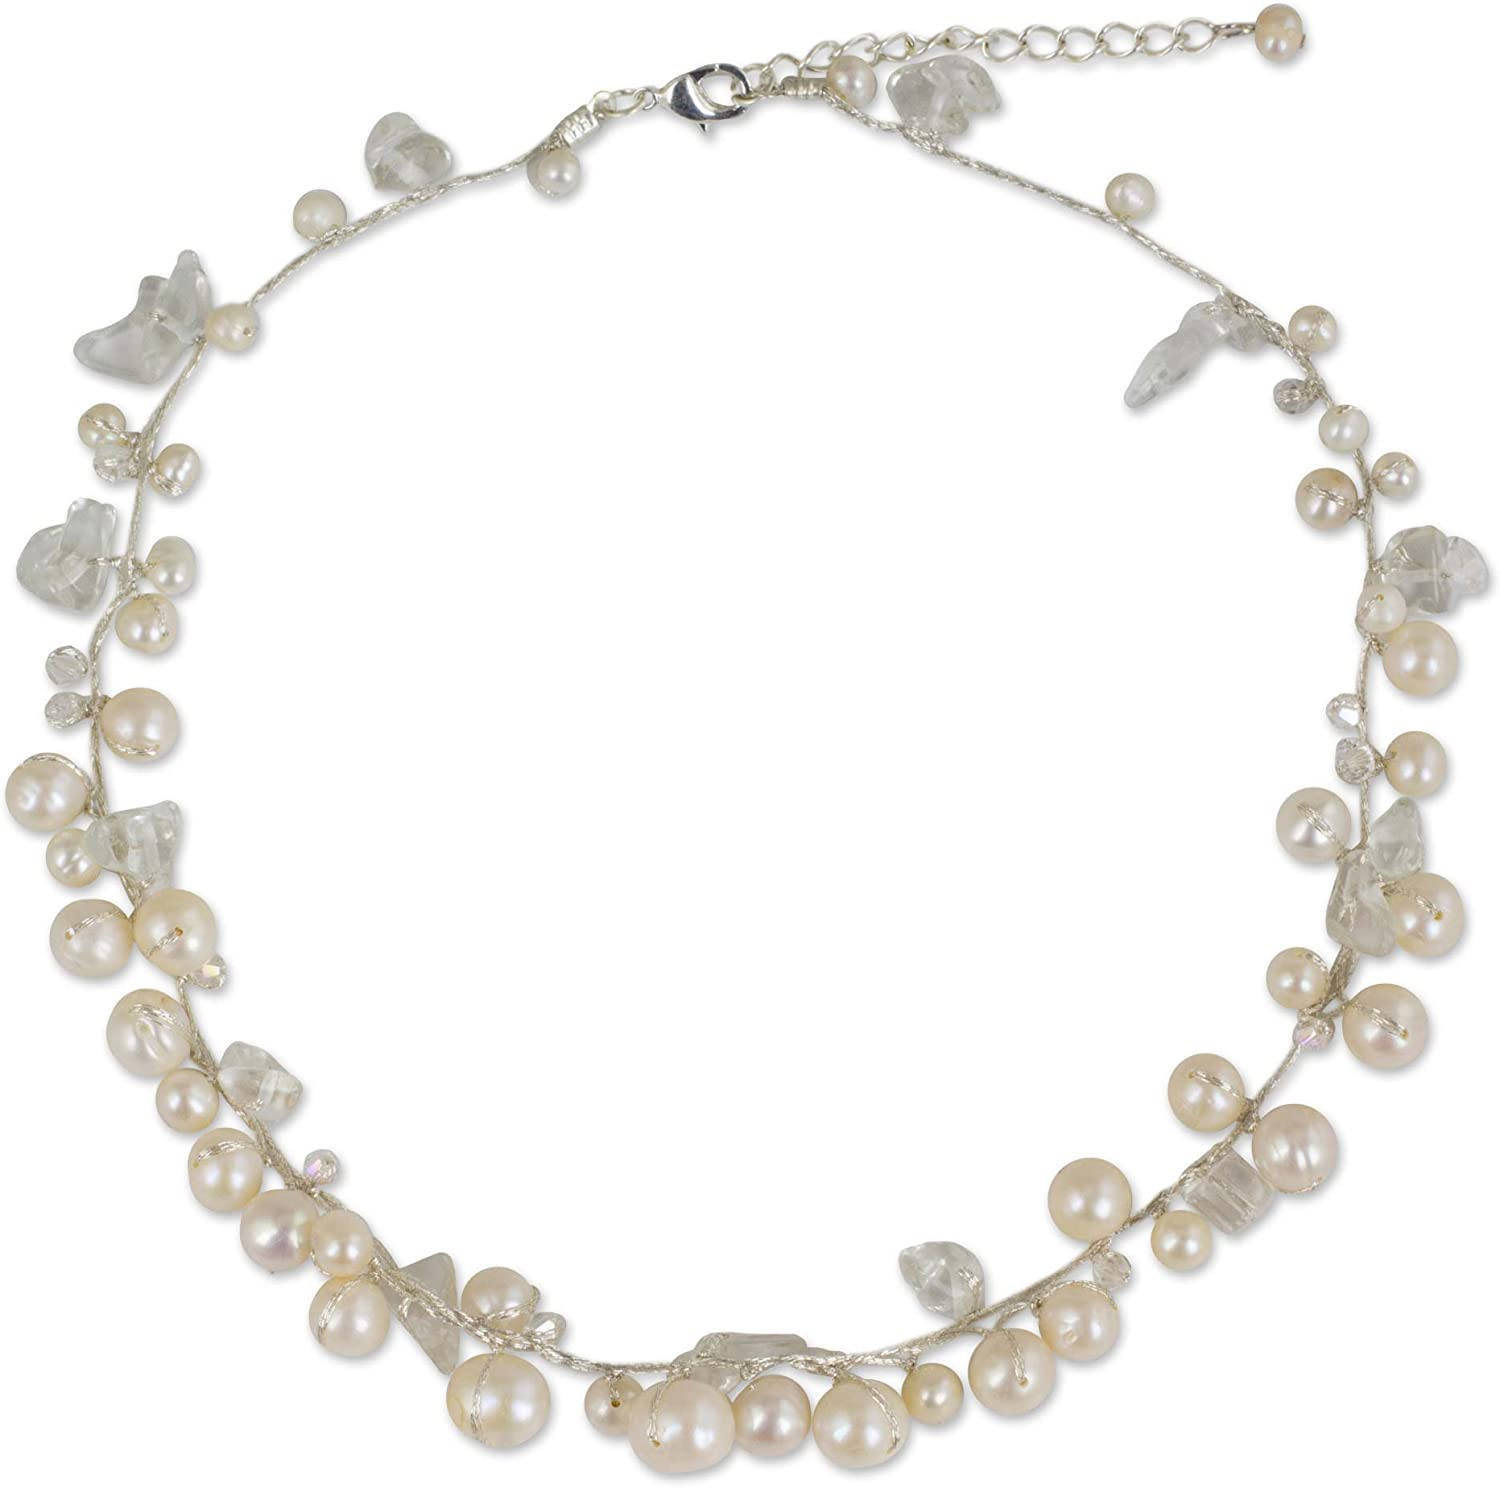 NOVICA Cultured Freshwater Pearl Strand Necklace White Color Oval Shaped, River of Snow'